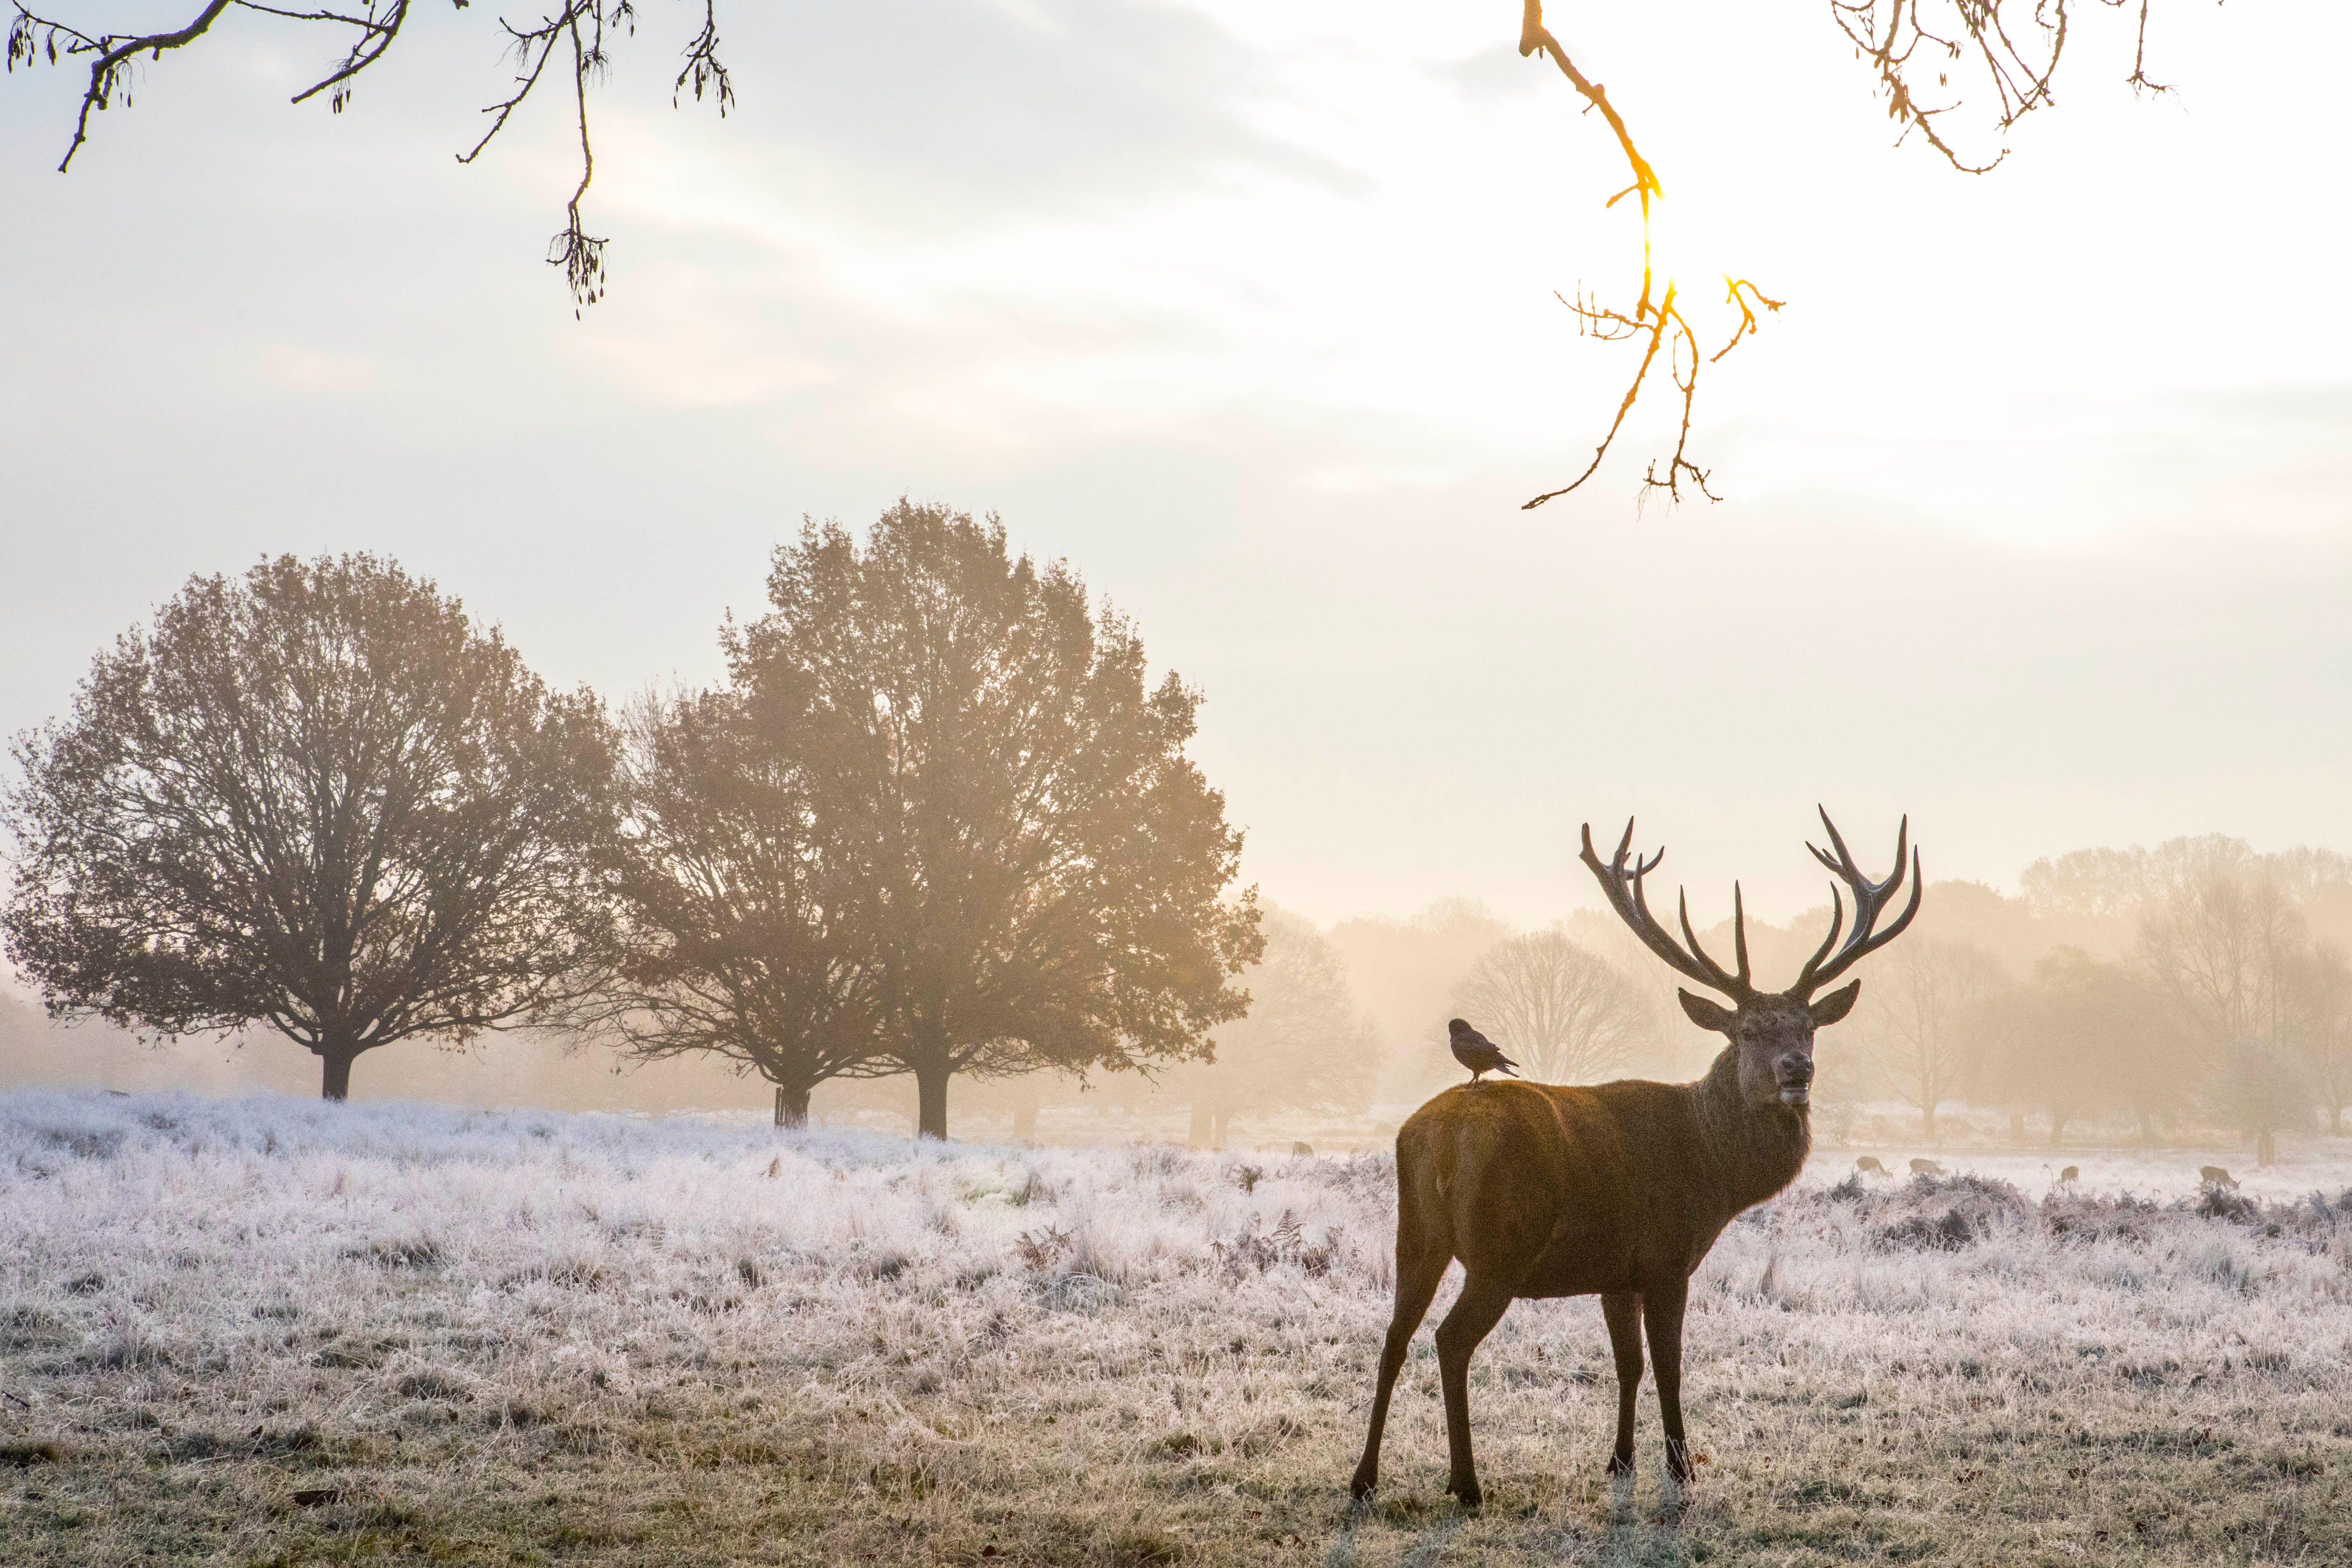 Seasonal weather, Richmond Park, London, UK - 22 Nov 2018